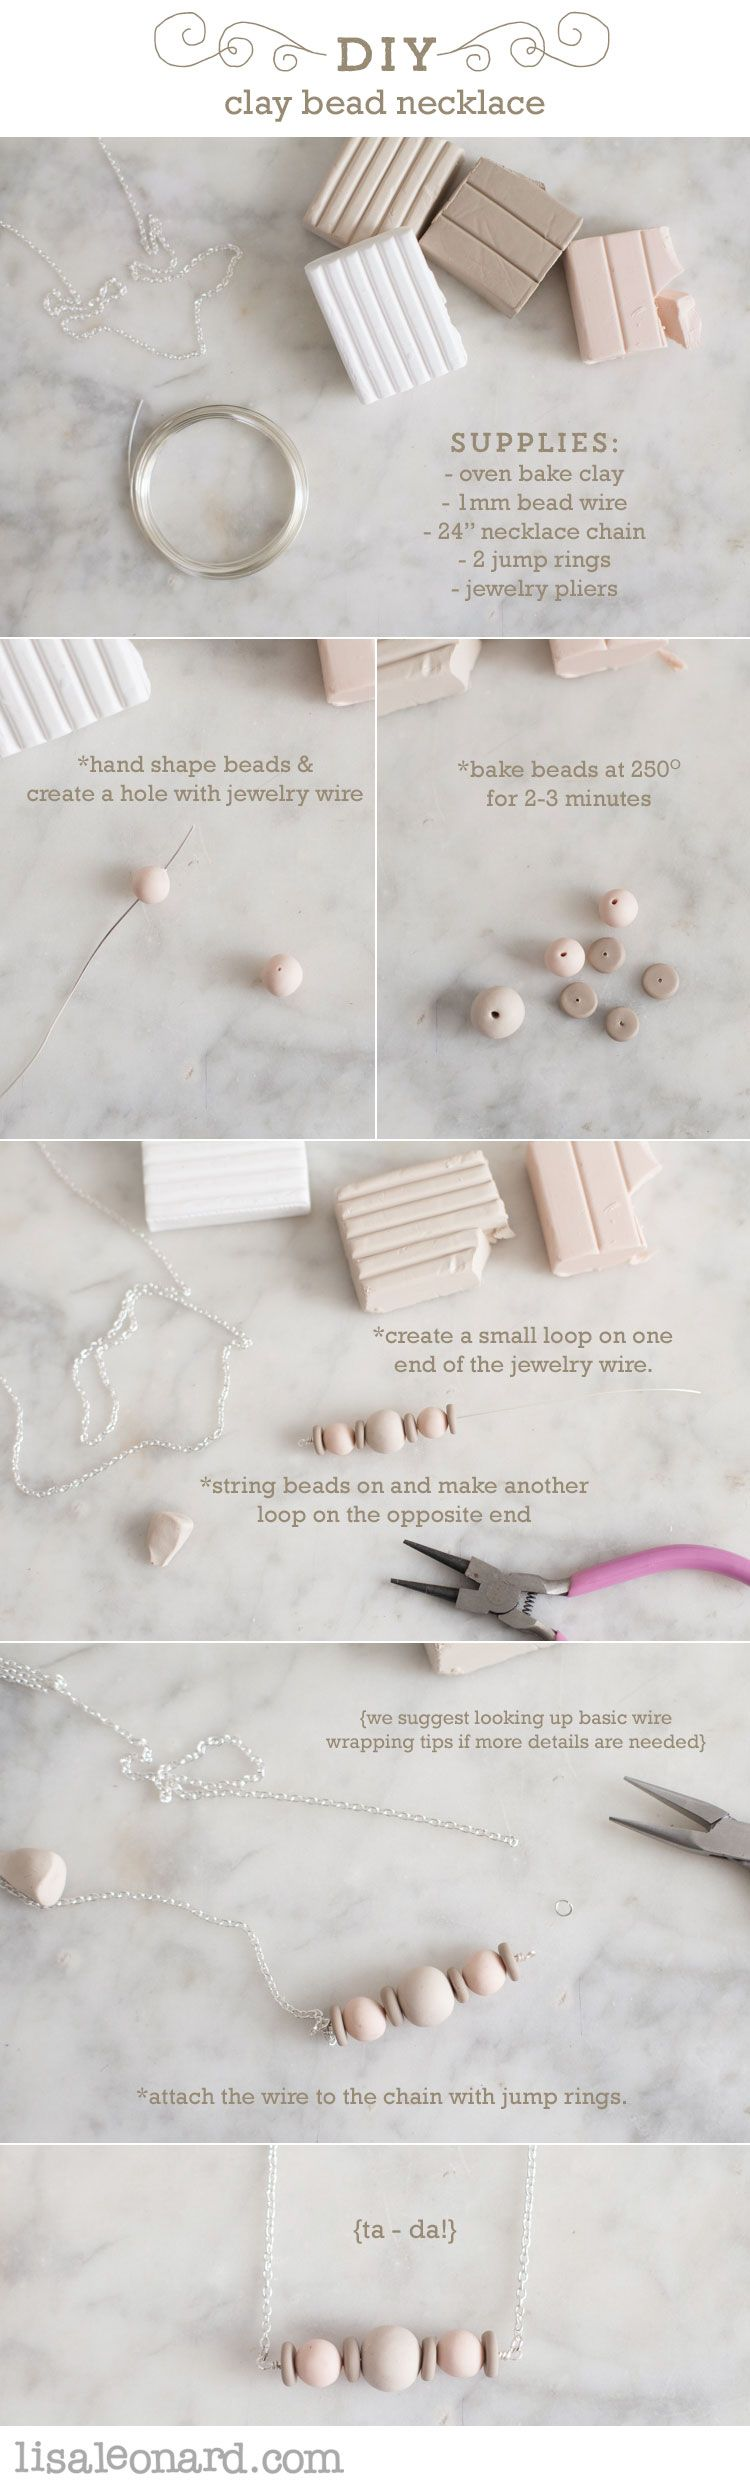 This project is fun and so easy! There are many colors of oven bake clay available at Michael's or your local craft store. Get the kids involved, too! Need help with wire wrapping? Here's a good visual tutorial. Have fun!…